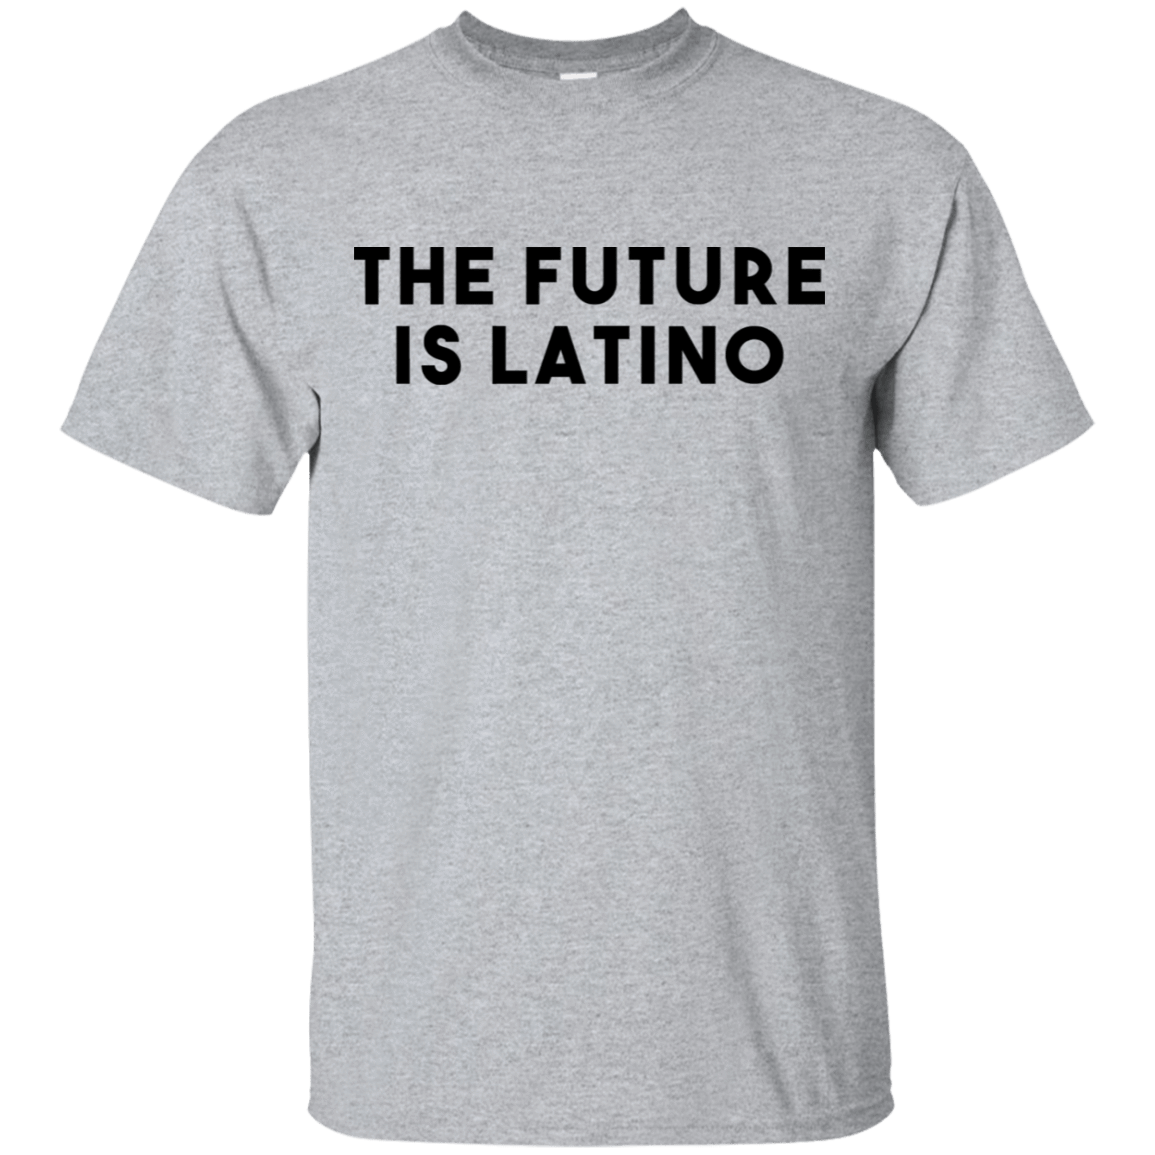 The Future Is Latino 22-115-73057004-254 - Tee Ript